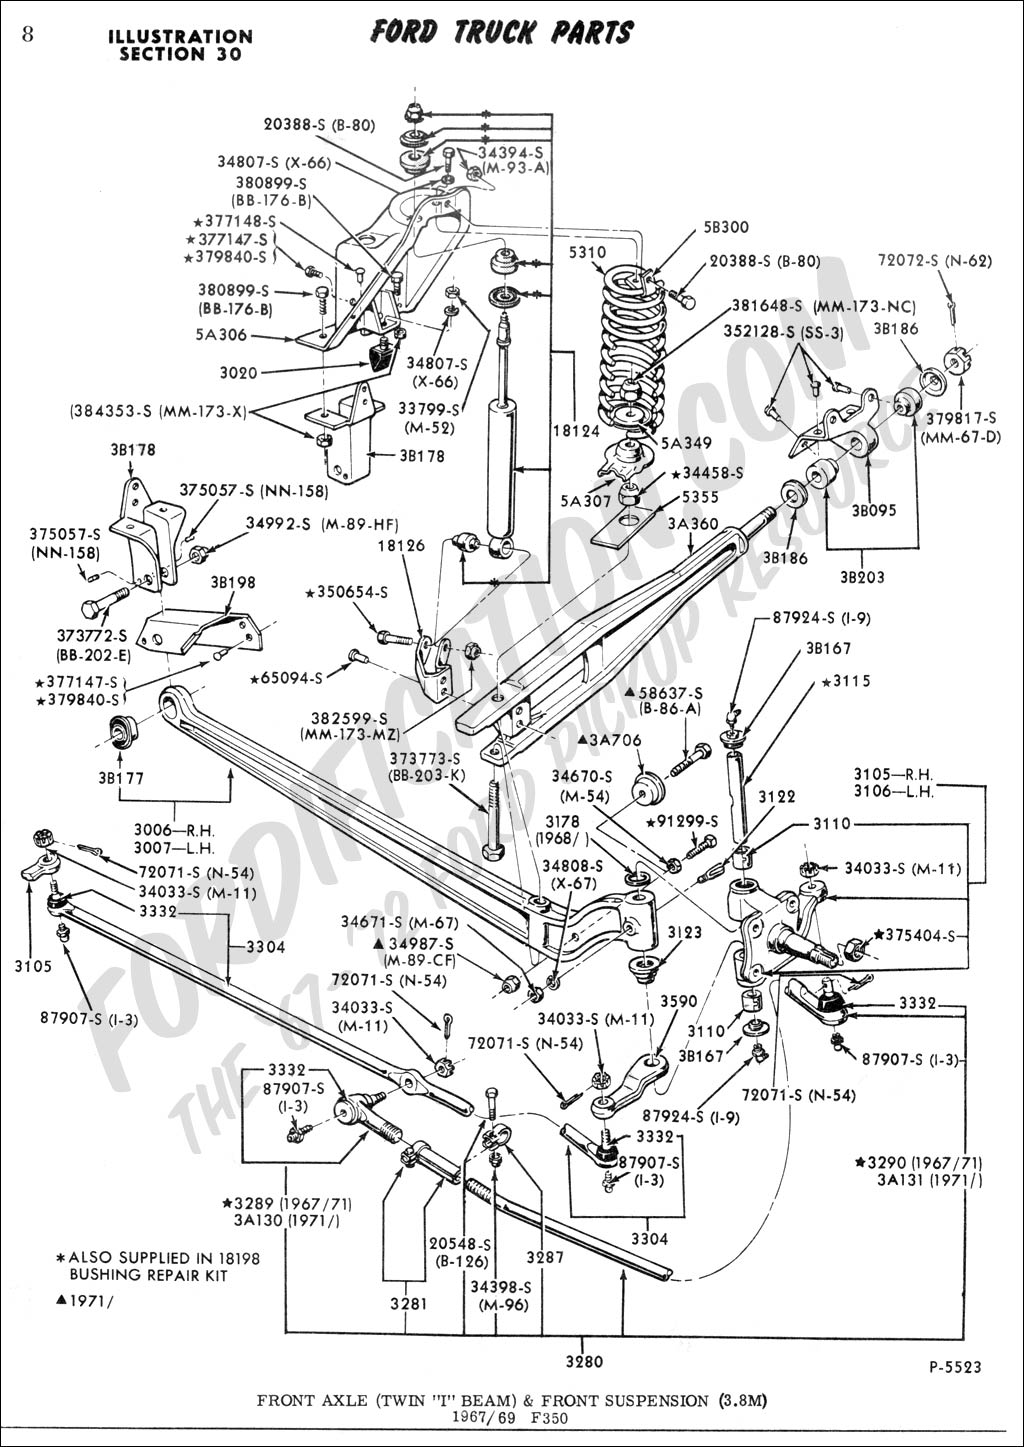 Ford 6610 Parts Diagram Trusted Schematics 8630 Wiring Free Picture Schematic 1900 U2022 For Tractor